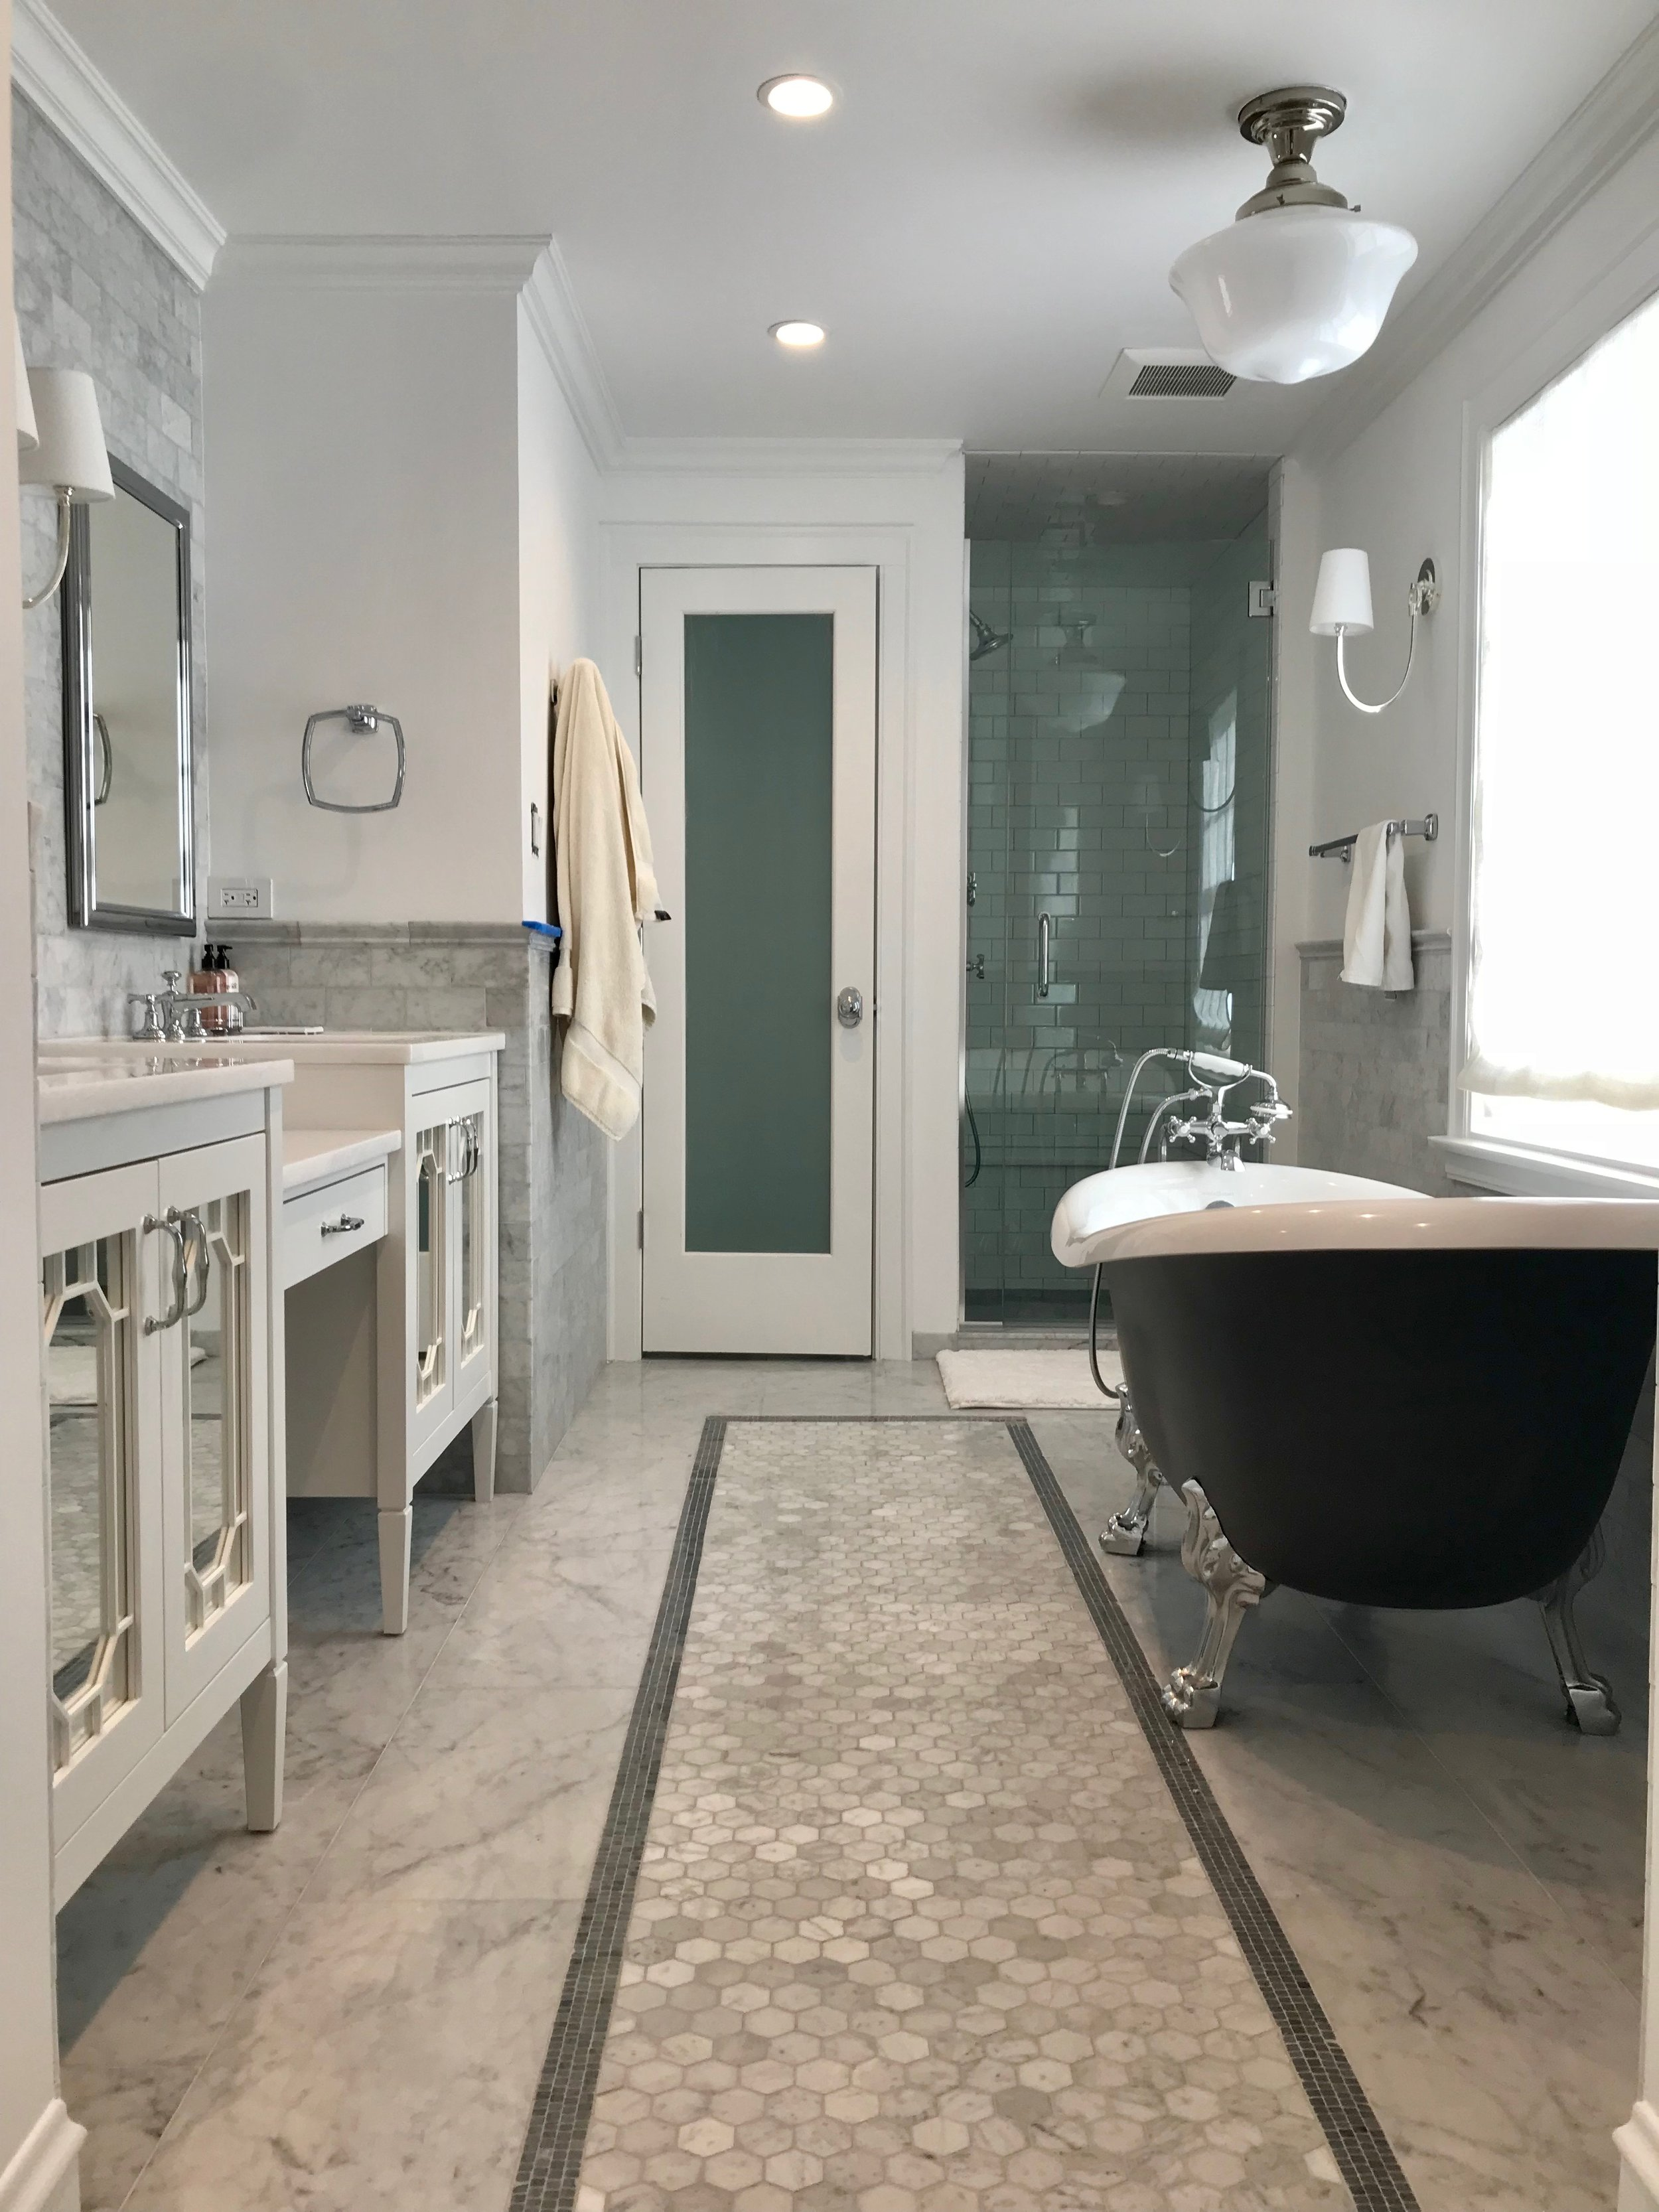 "We recessed the 84"" vanity into the wall to accommodate the free-standing tub. We used Walker Zanger's Grigio Scuro mosaic to create a border around the white carrara hex tile along the center line of the bathroom."